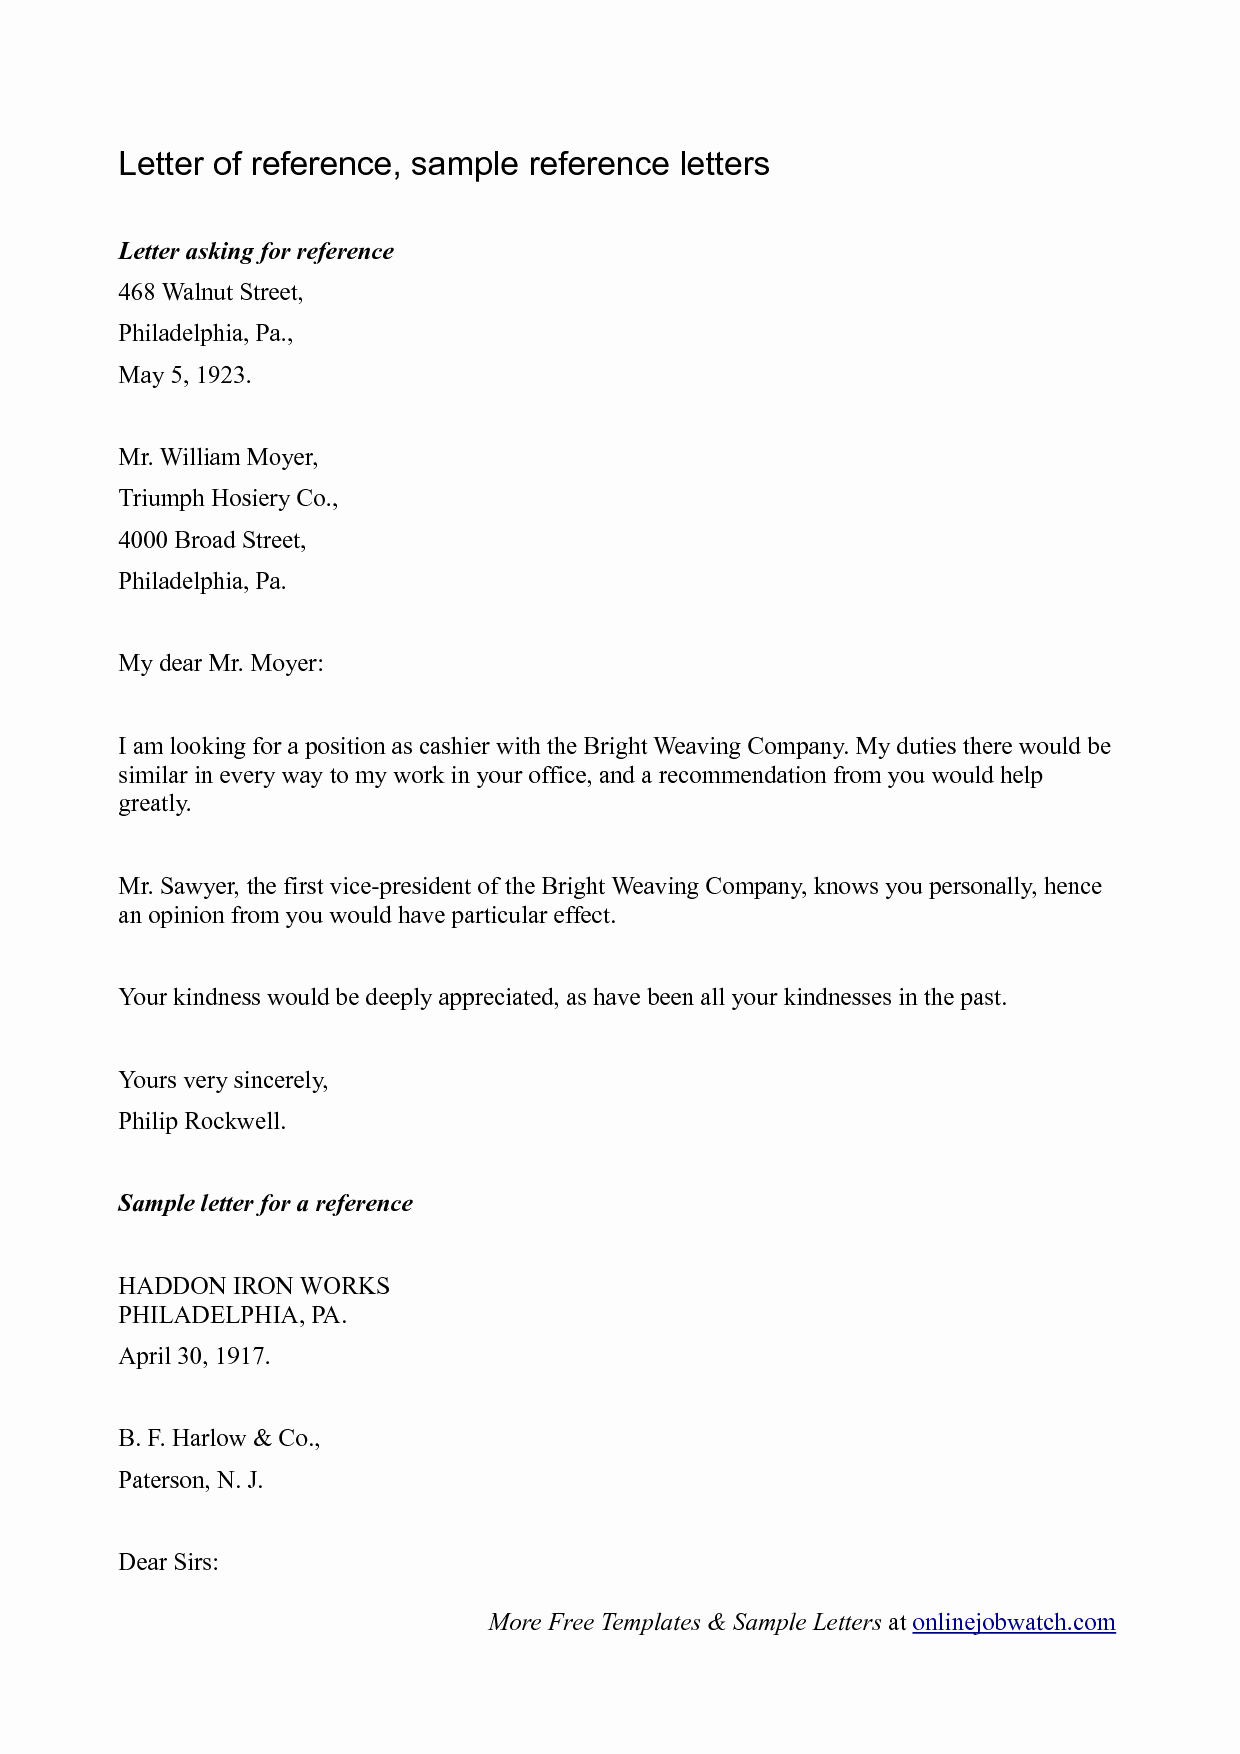 Letter Of Recommendation Outline Luxury Sample Reference Letter Reference Letter Template for